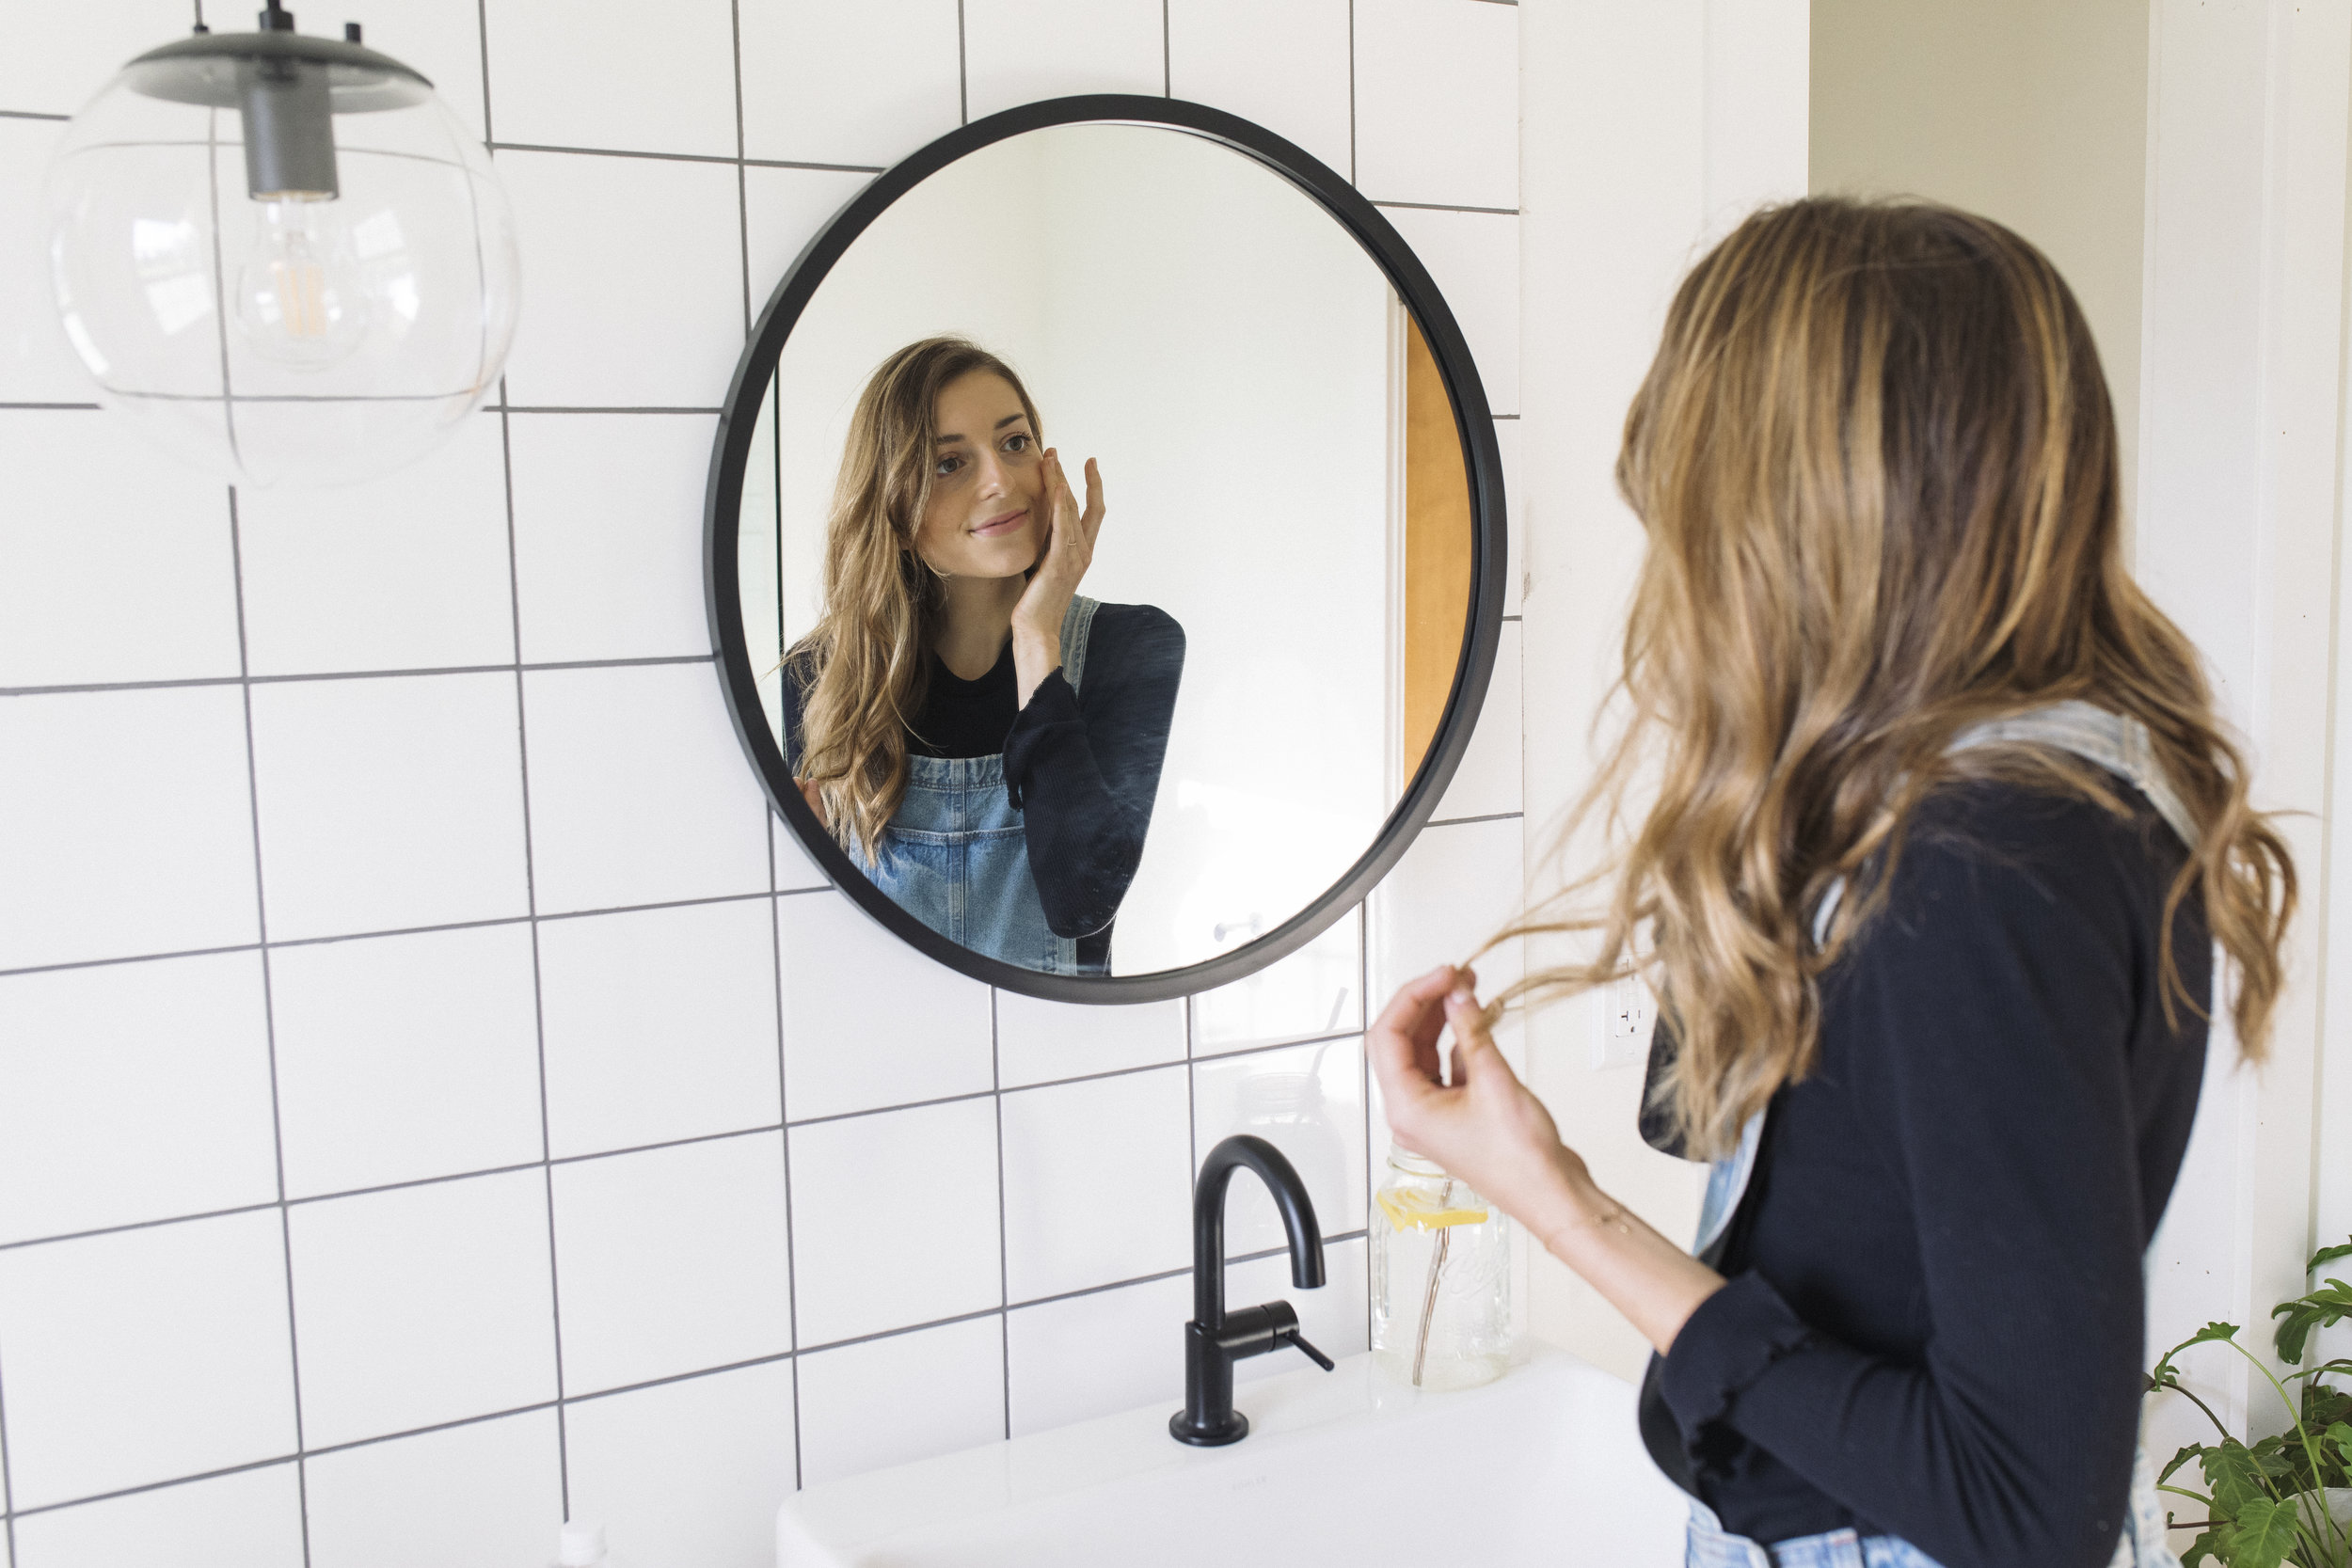 Emily applies face moisturizer in front of mirror to promote healthy skin and a healthy life style of self-love